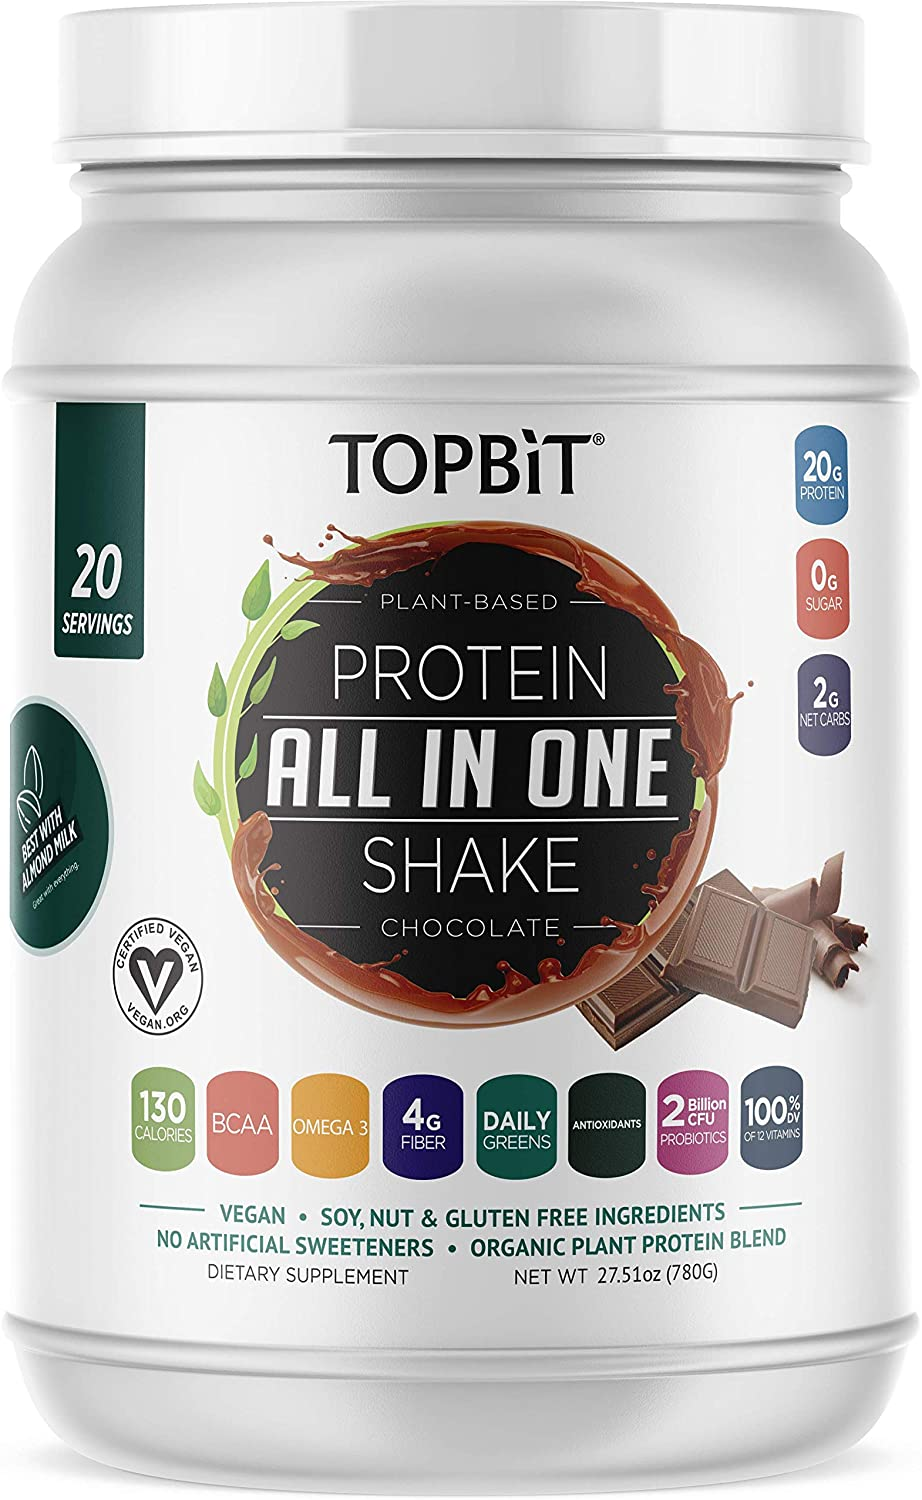 TOPBiT All-in-One Plant Protein Powder, Chocolate – Vegan Protein Powder, Sugar Free Protein, Stevia Free, Nut Free, Soy Free, 20g Protein Shake, Probiotics, BCAA, Greens, 1.8LB